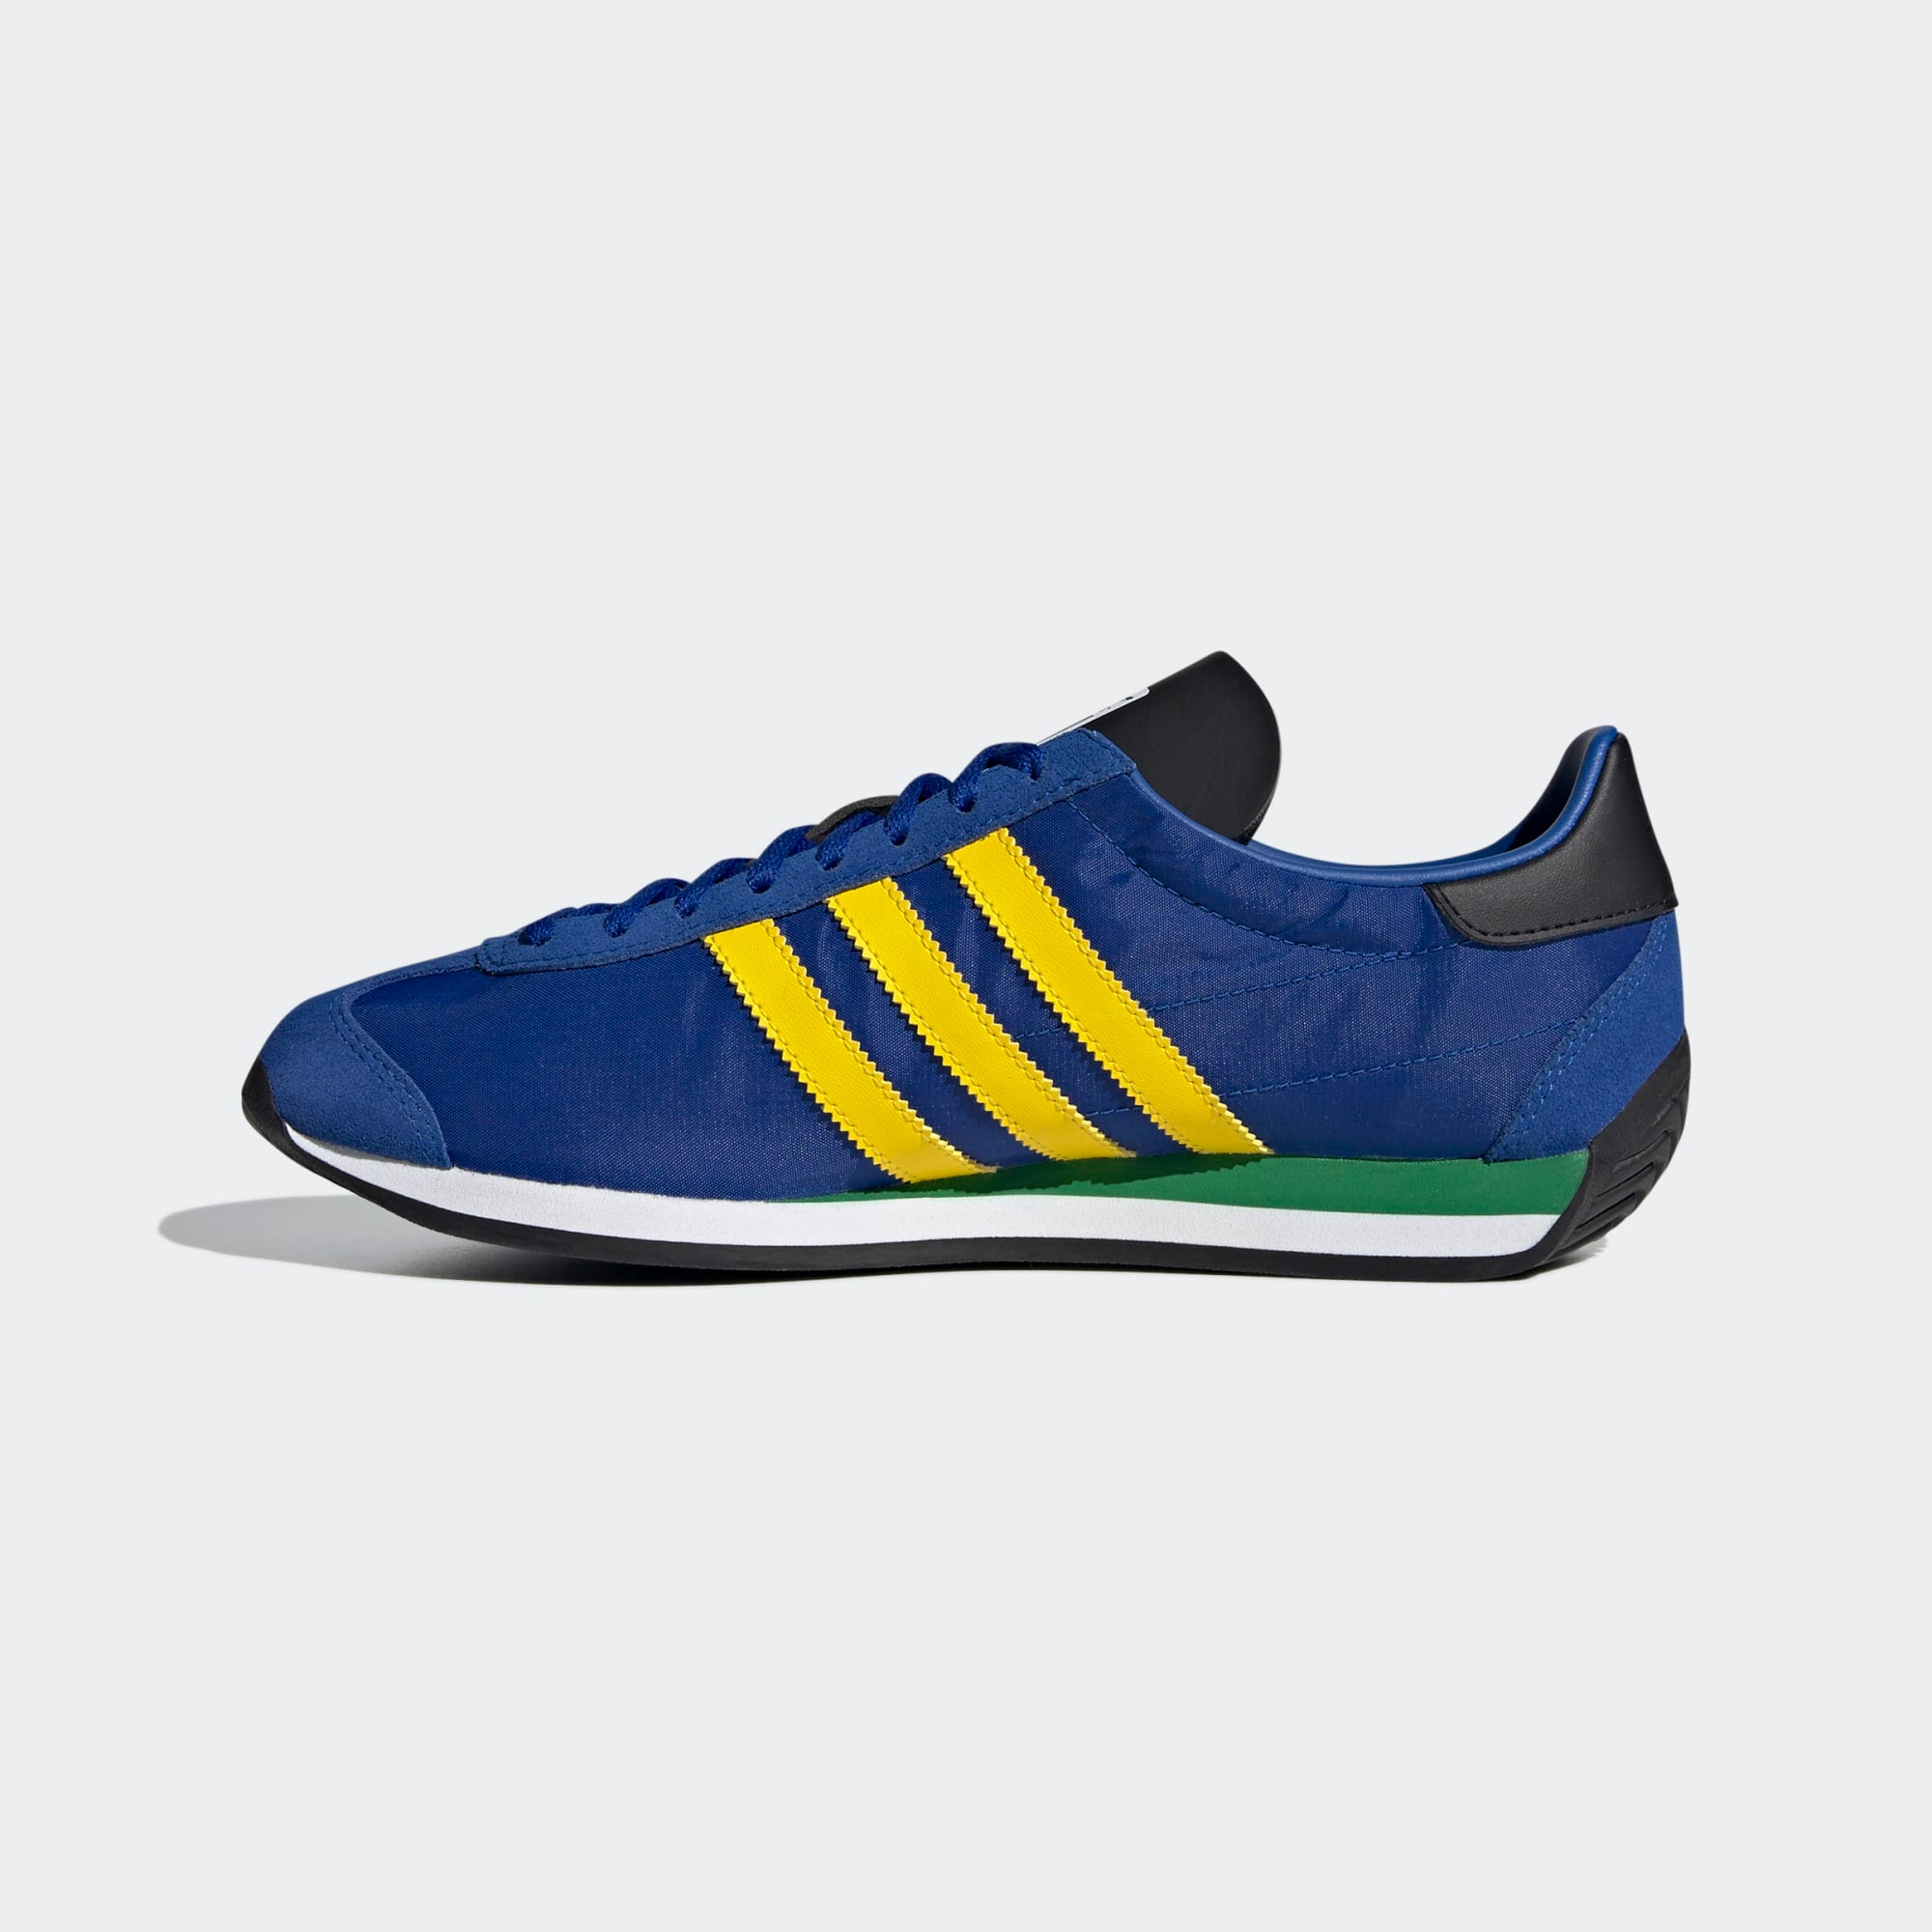 ADIDAS M'S FOOTWEAR COUNTRY OG - ROYAL BLUE/CLOUD WHITE